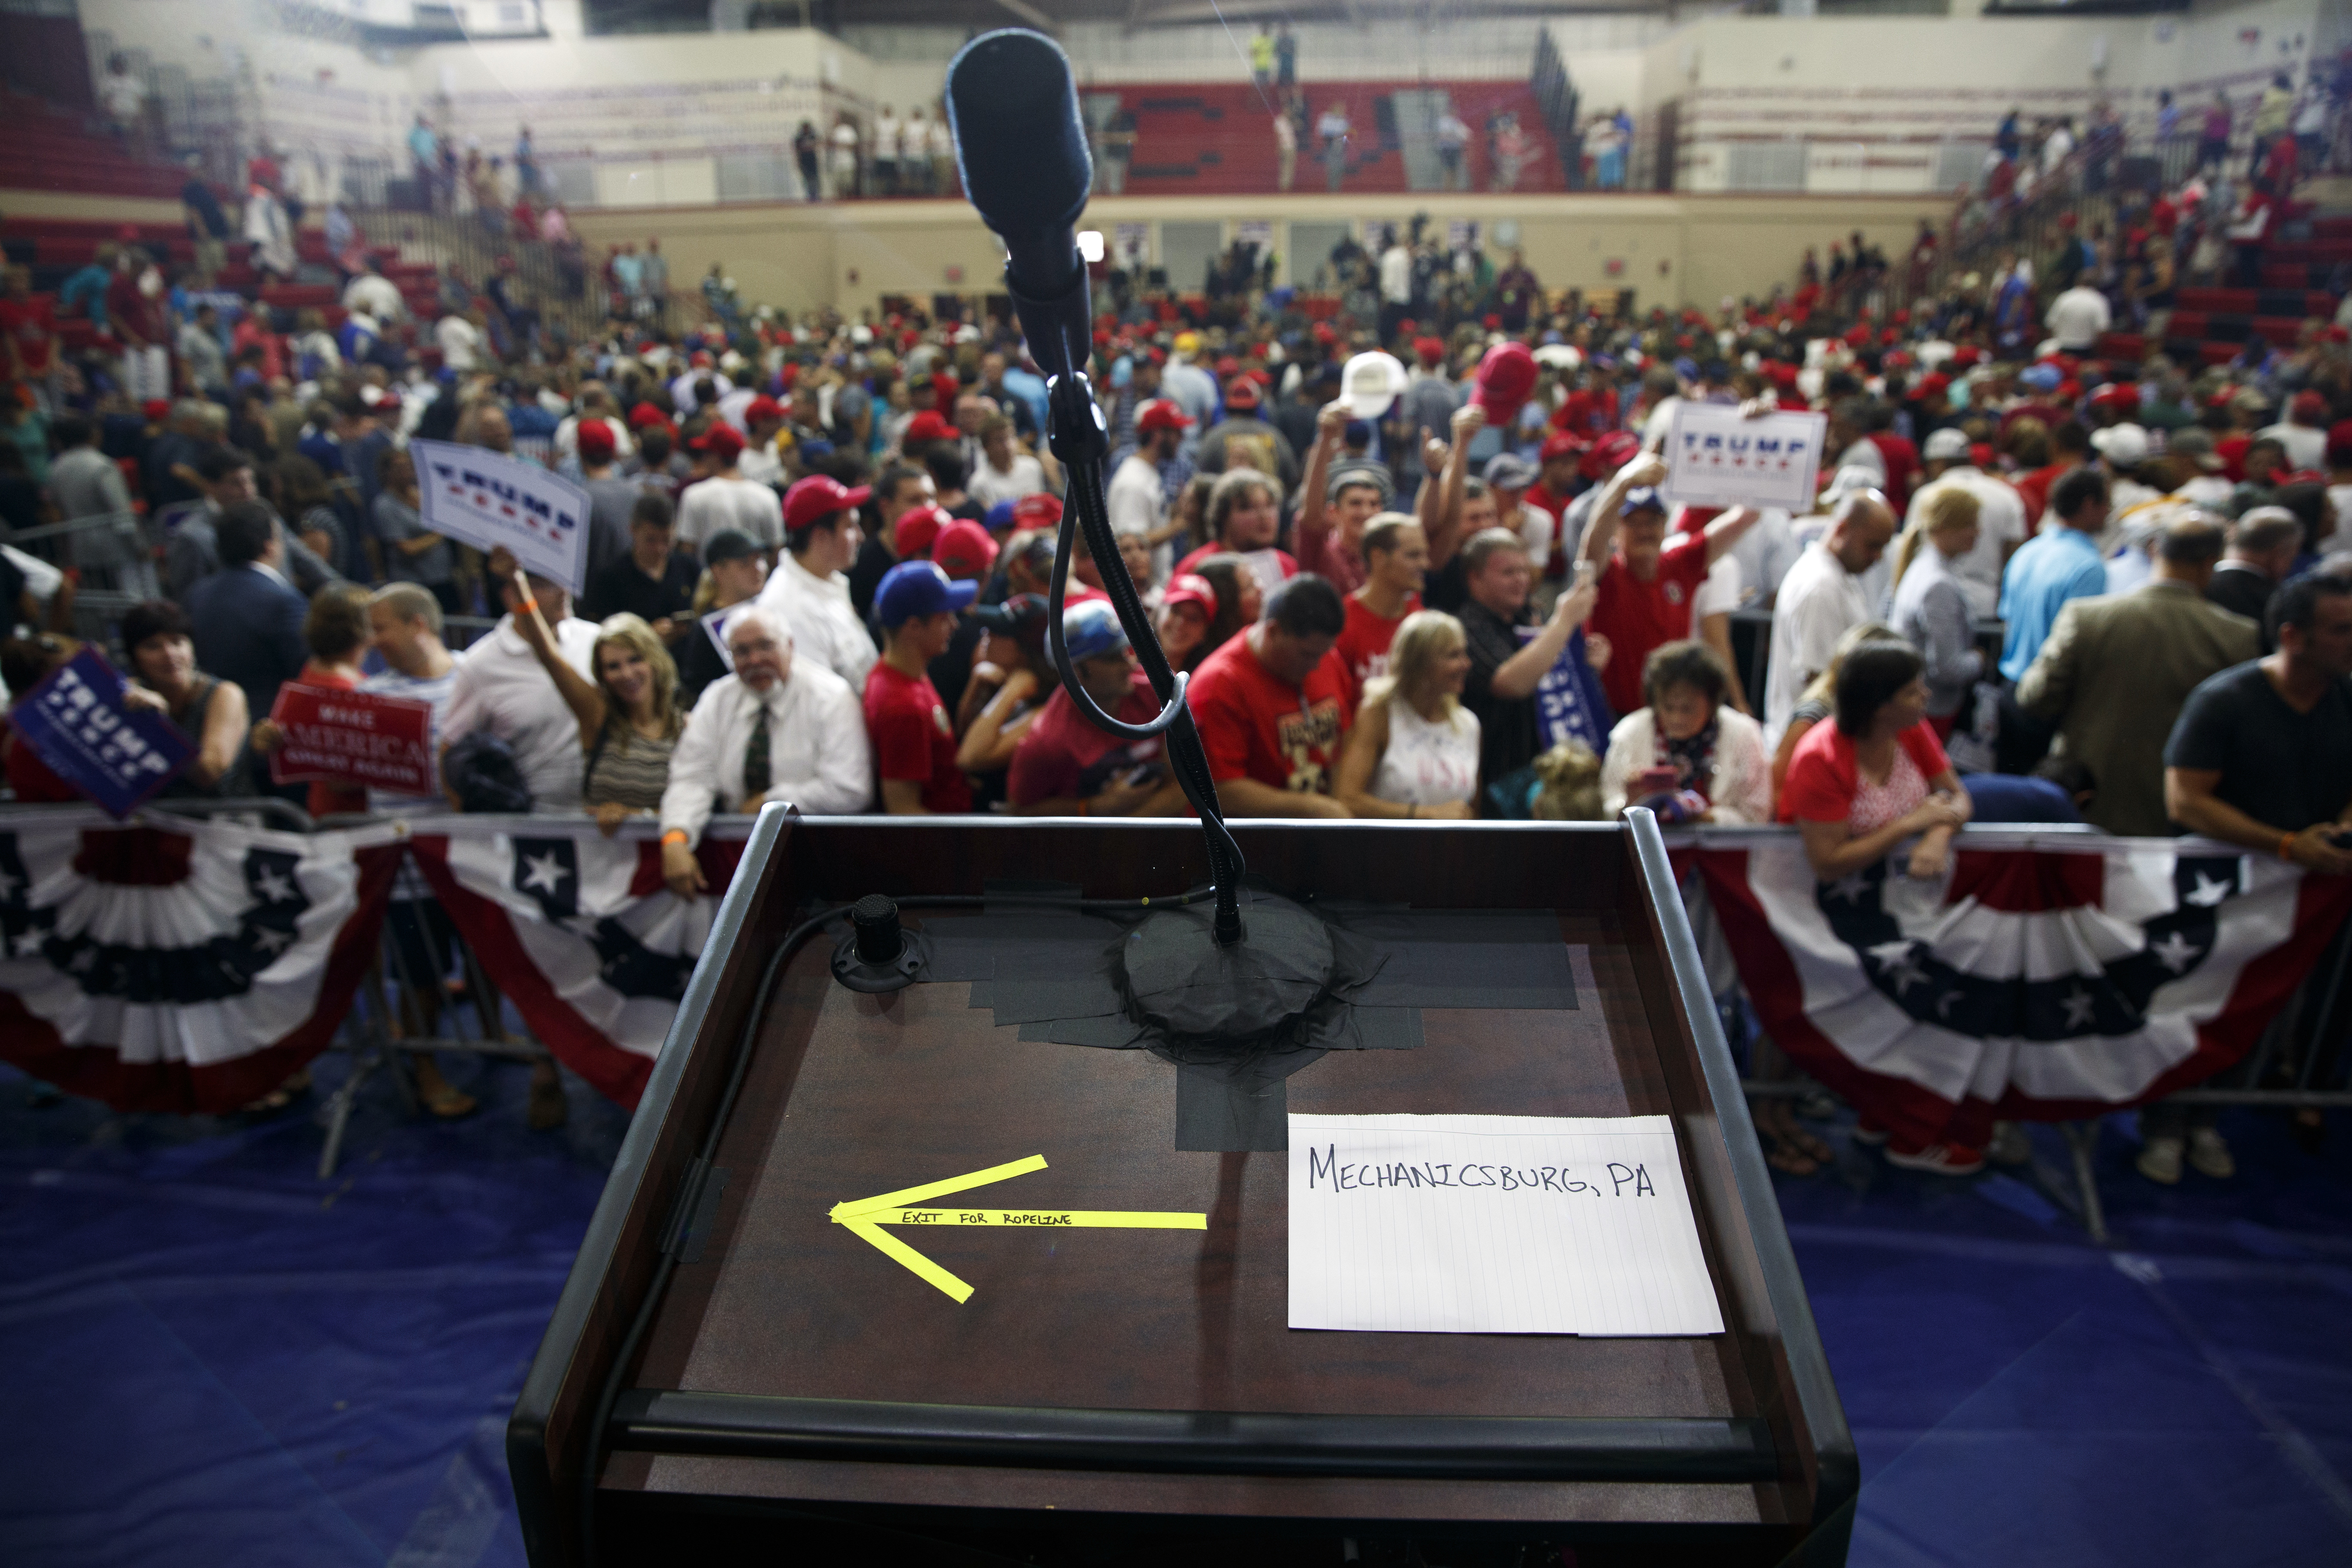 Notes sit on the lectern after Republican presidential candidate Donald Trump spoke during a campaign rally at Cumberland Valley High School, Aug. 1, 2016, in Mechanicsburg, Pa.